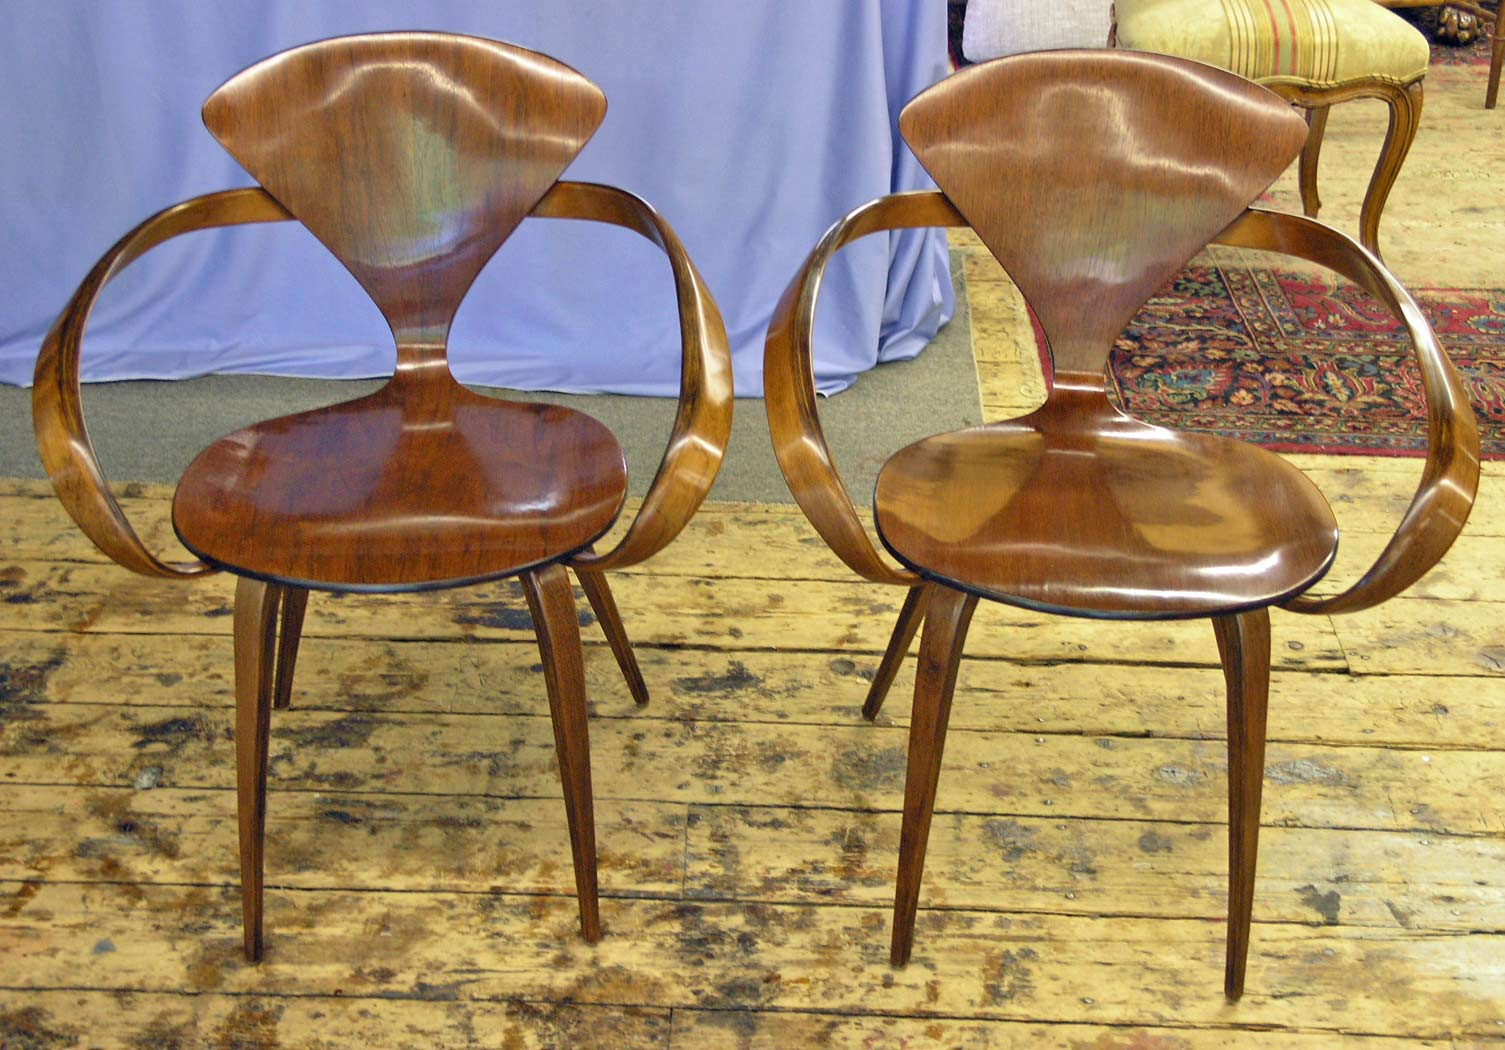 Two restored Plycraft chairs